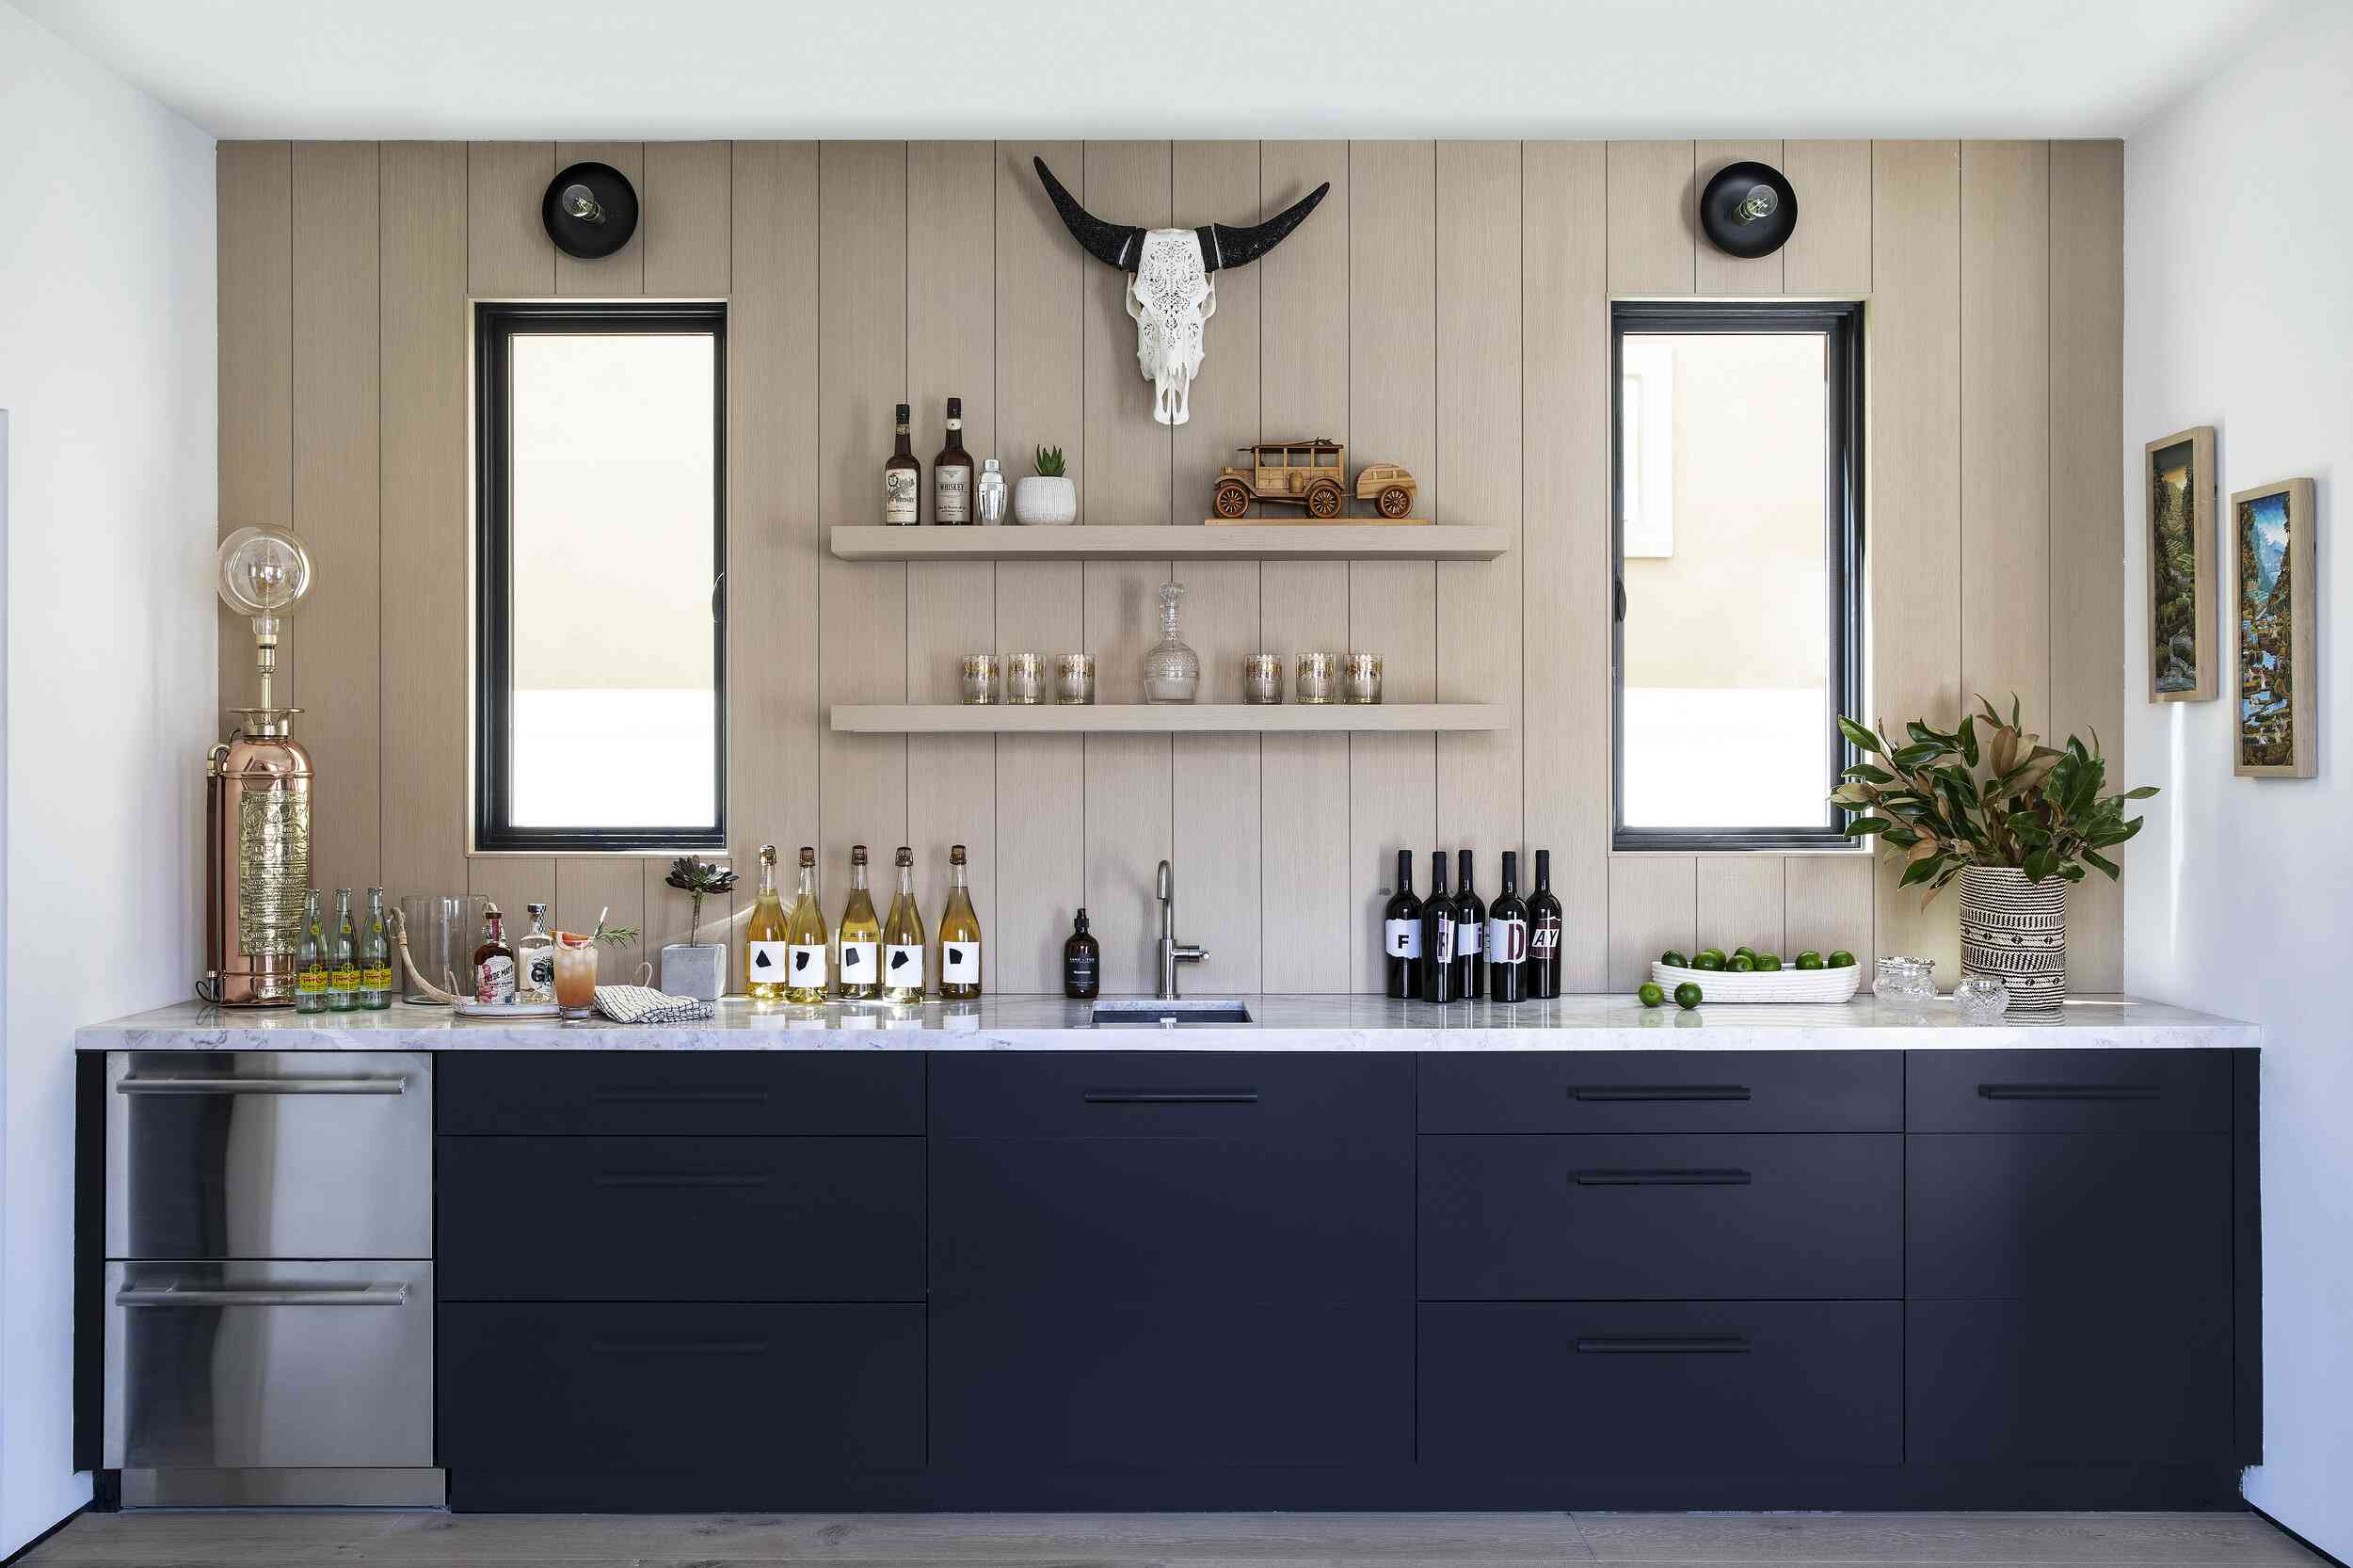 A wet bar with a wood panel-lined backsplash and matching wooden shelves